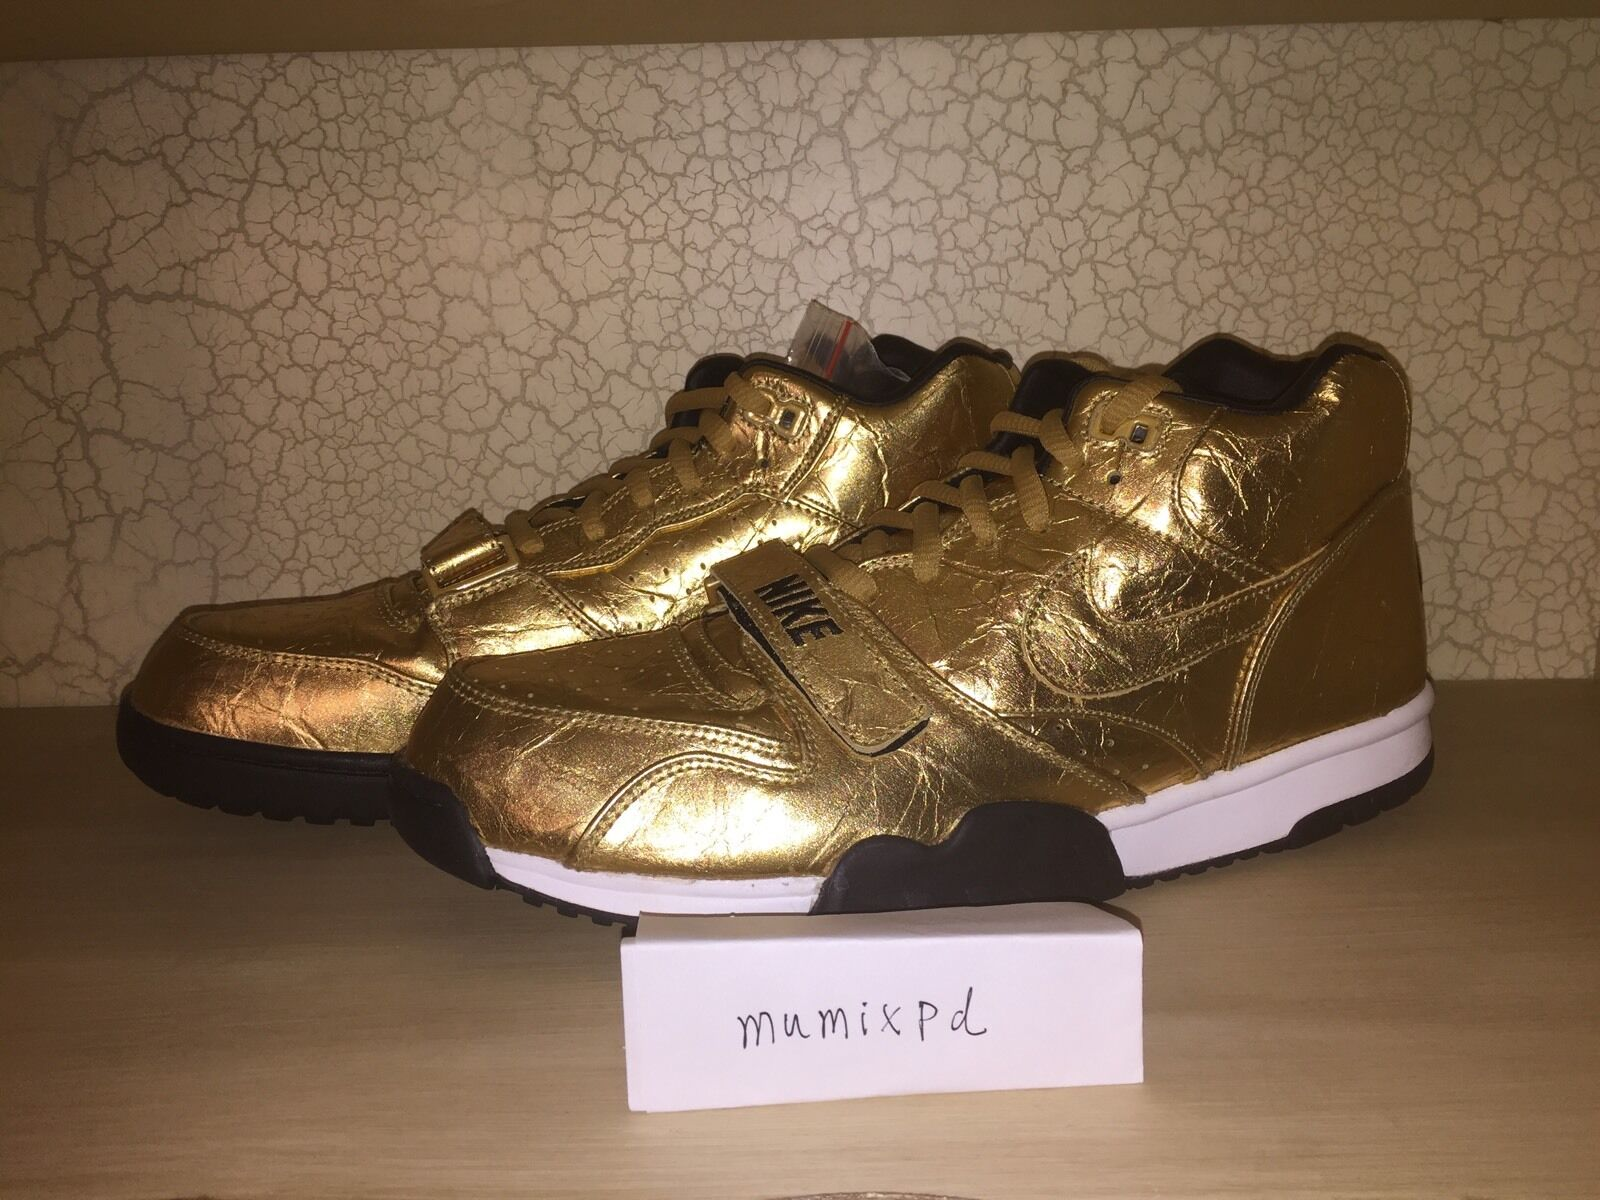 New Nike Air Trainer 1 PRM QS NFL qs limited Superbowl 50 840169-700 Gold sz 13